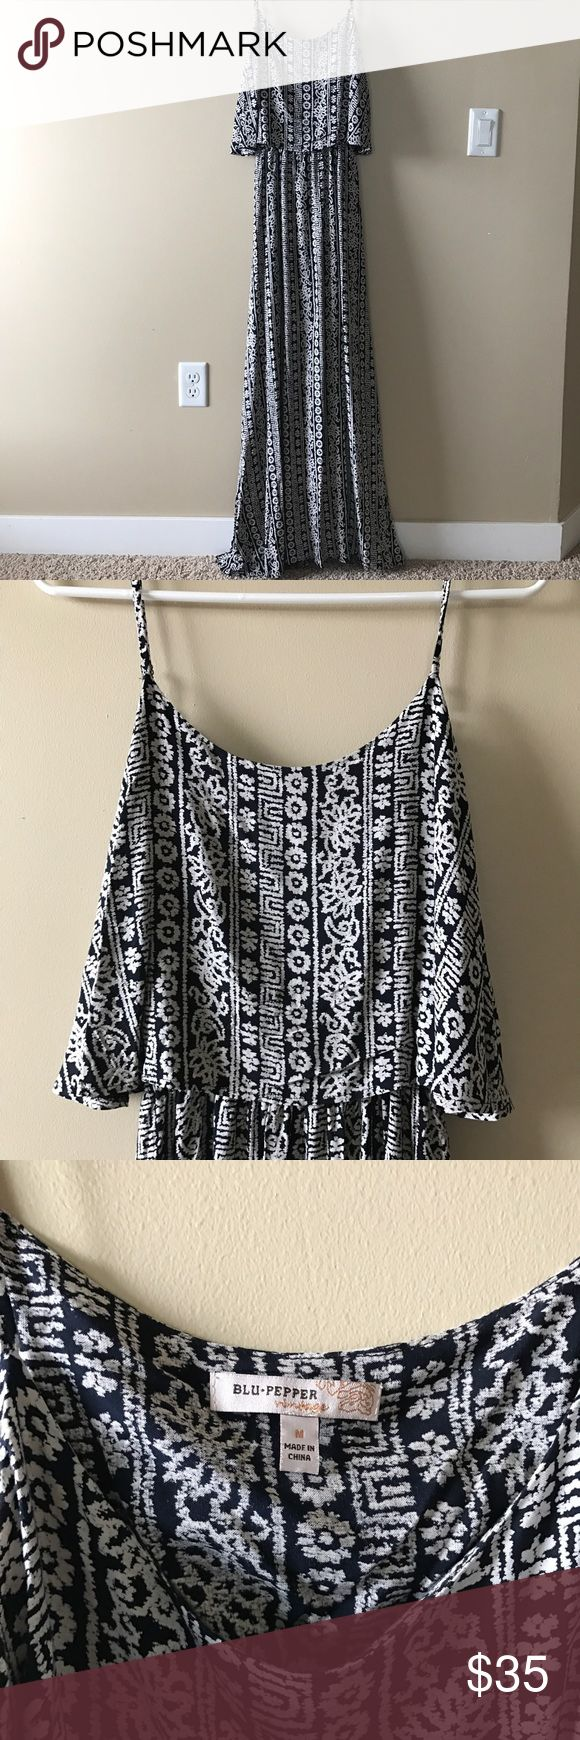 """Blu Pepper Maxi dress. Charcoal grey and white bohemian patterned maxi dress. Great summertime dress! I am 5'8"""" and it hits just below my ankle. Blu Pepper Dresses Maxi"""